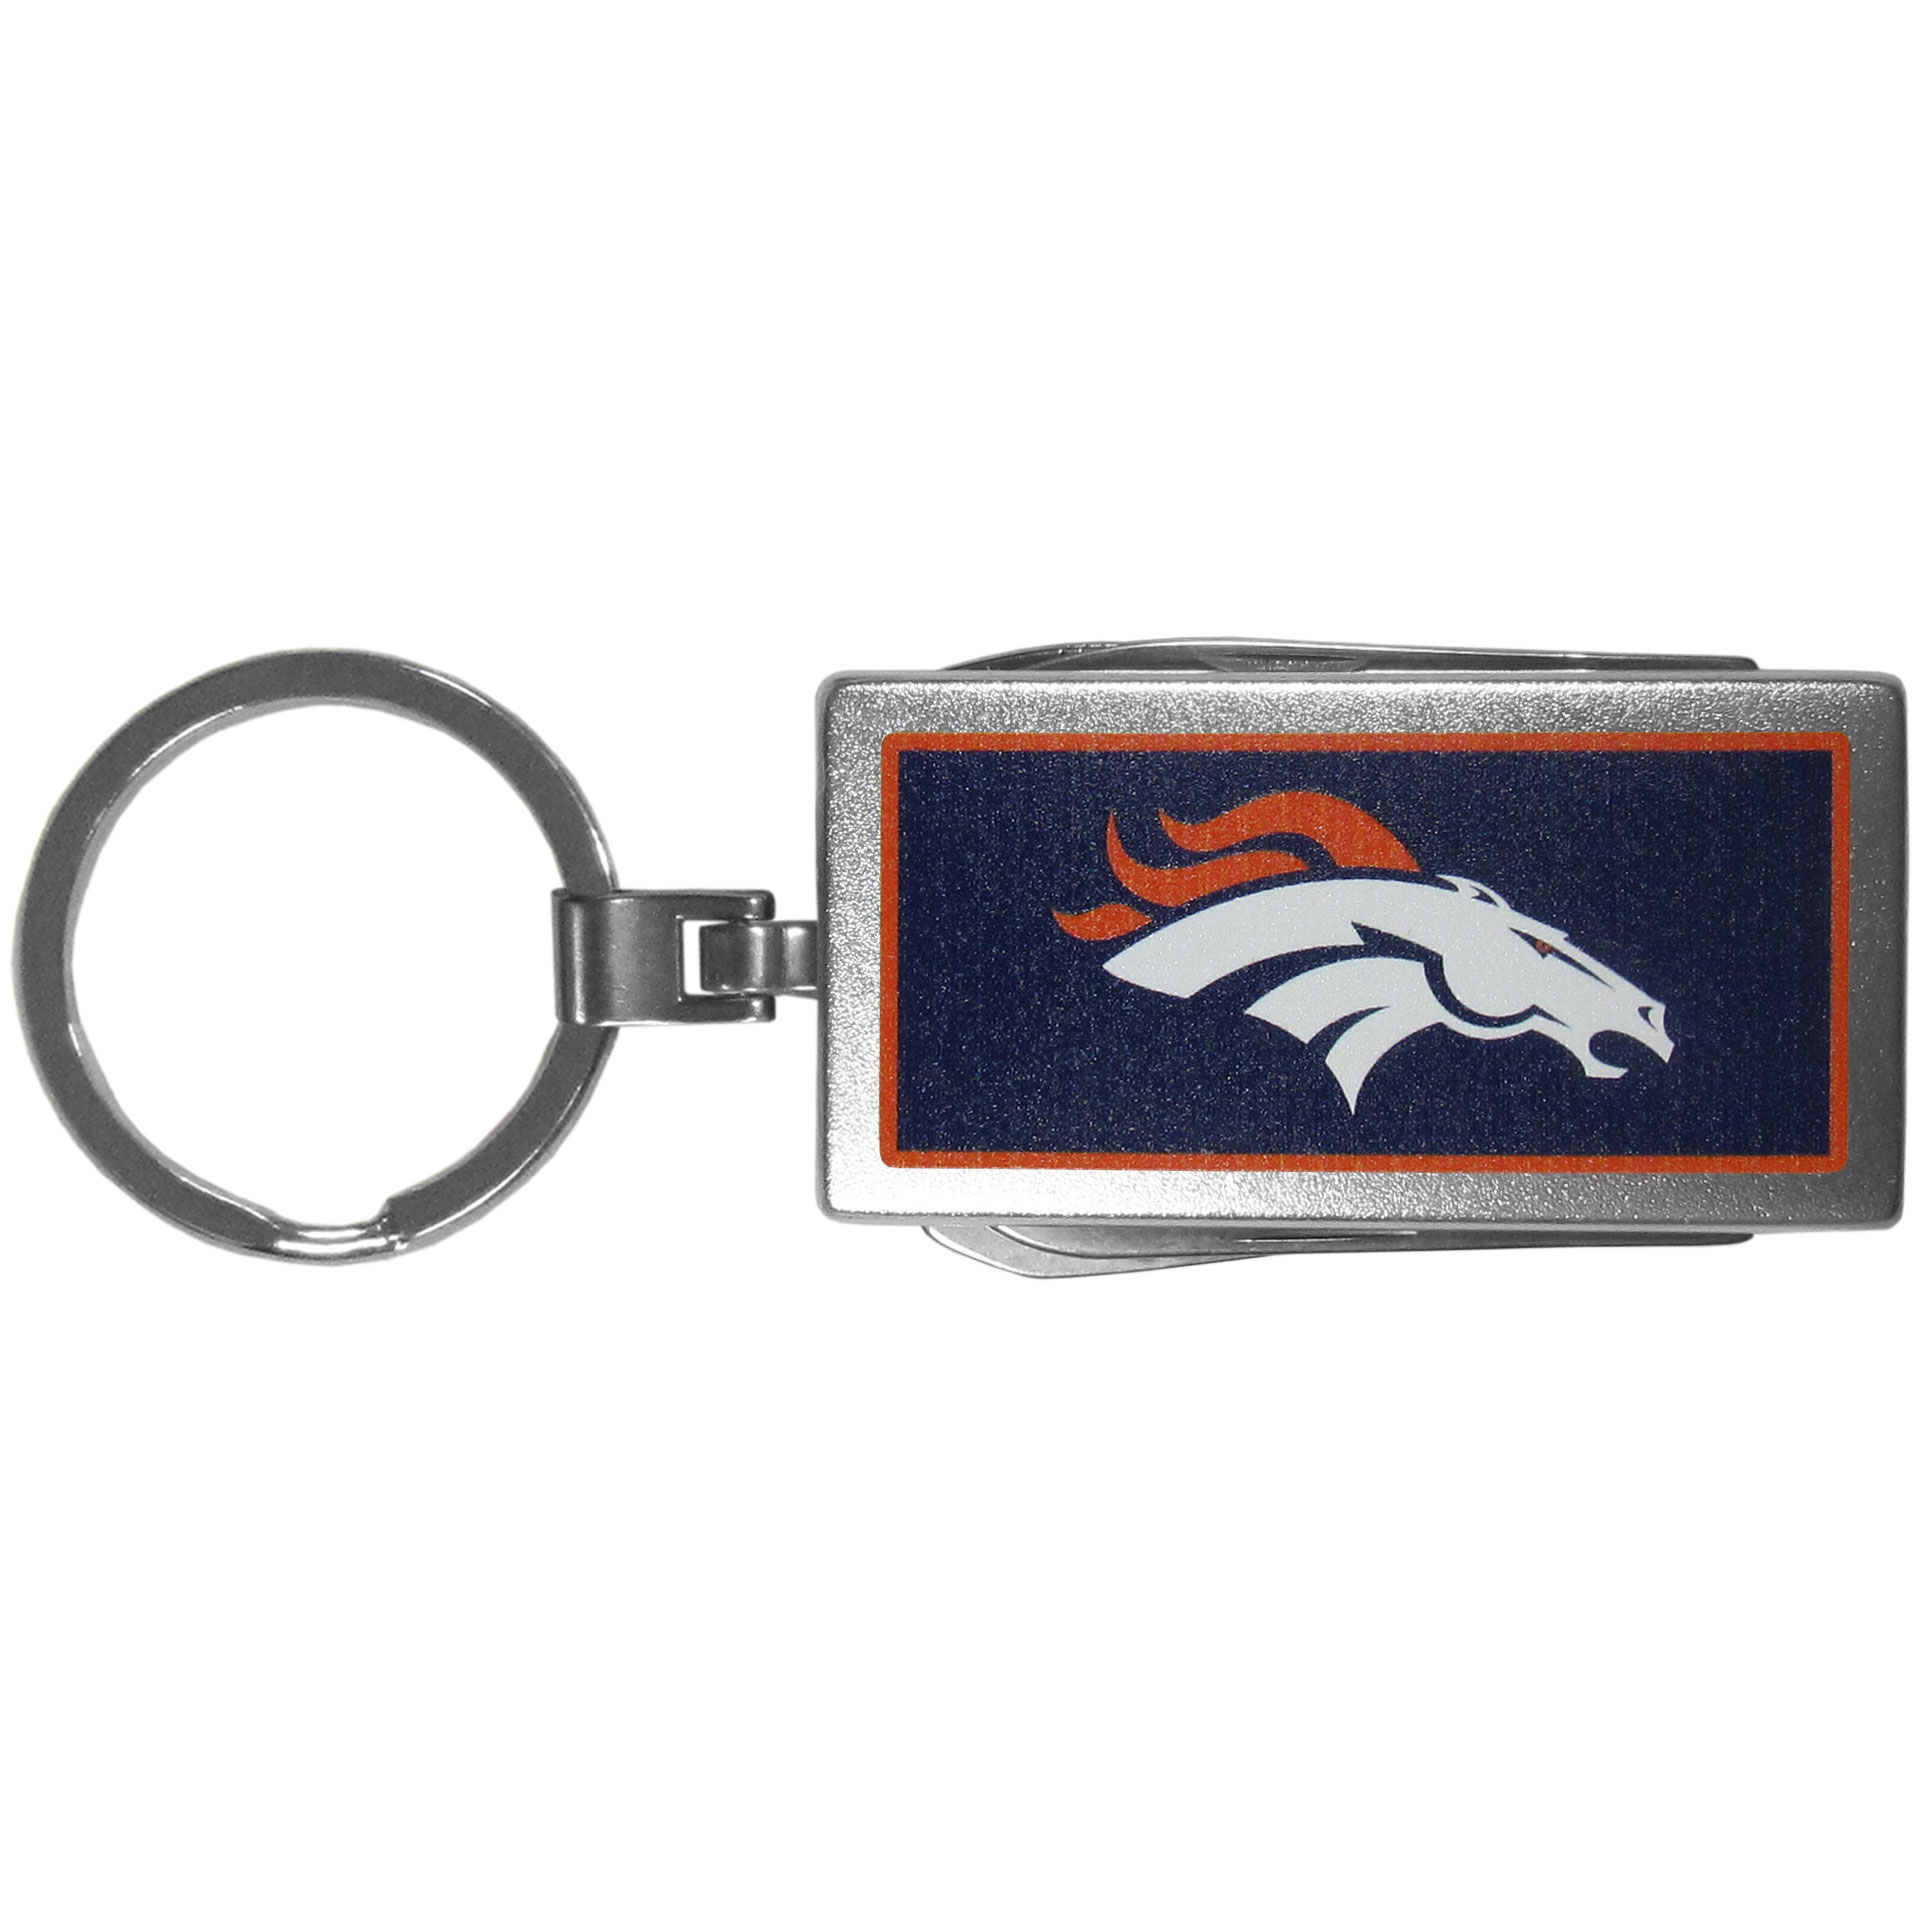 Denver Broncos Multi-tool Key Chain, Logo - Be the hero at the tailgate, camping, or on a Friday night with your Denver Broncos Multi-Tool Keychain which comes complete with bottle opener, scissors, knife, nail file and screw driver. Be it opening a package or a beverage Siskiyou's Multi-Tool Keychain goes wherever your keys do. The keychain hangs at 4 inches long when closed.